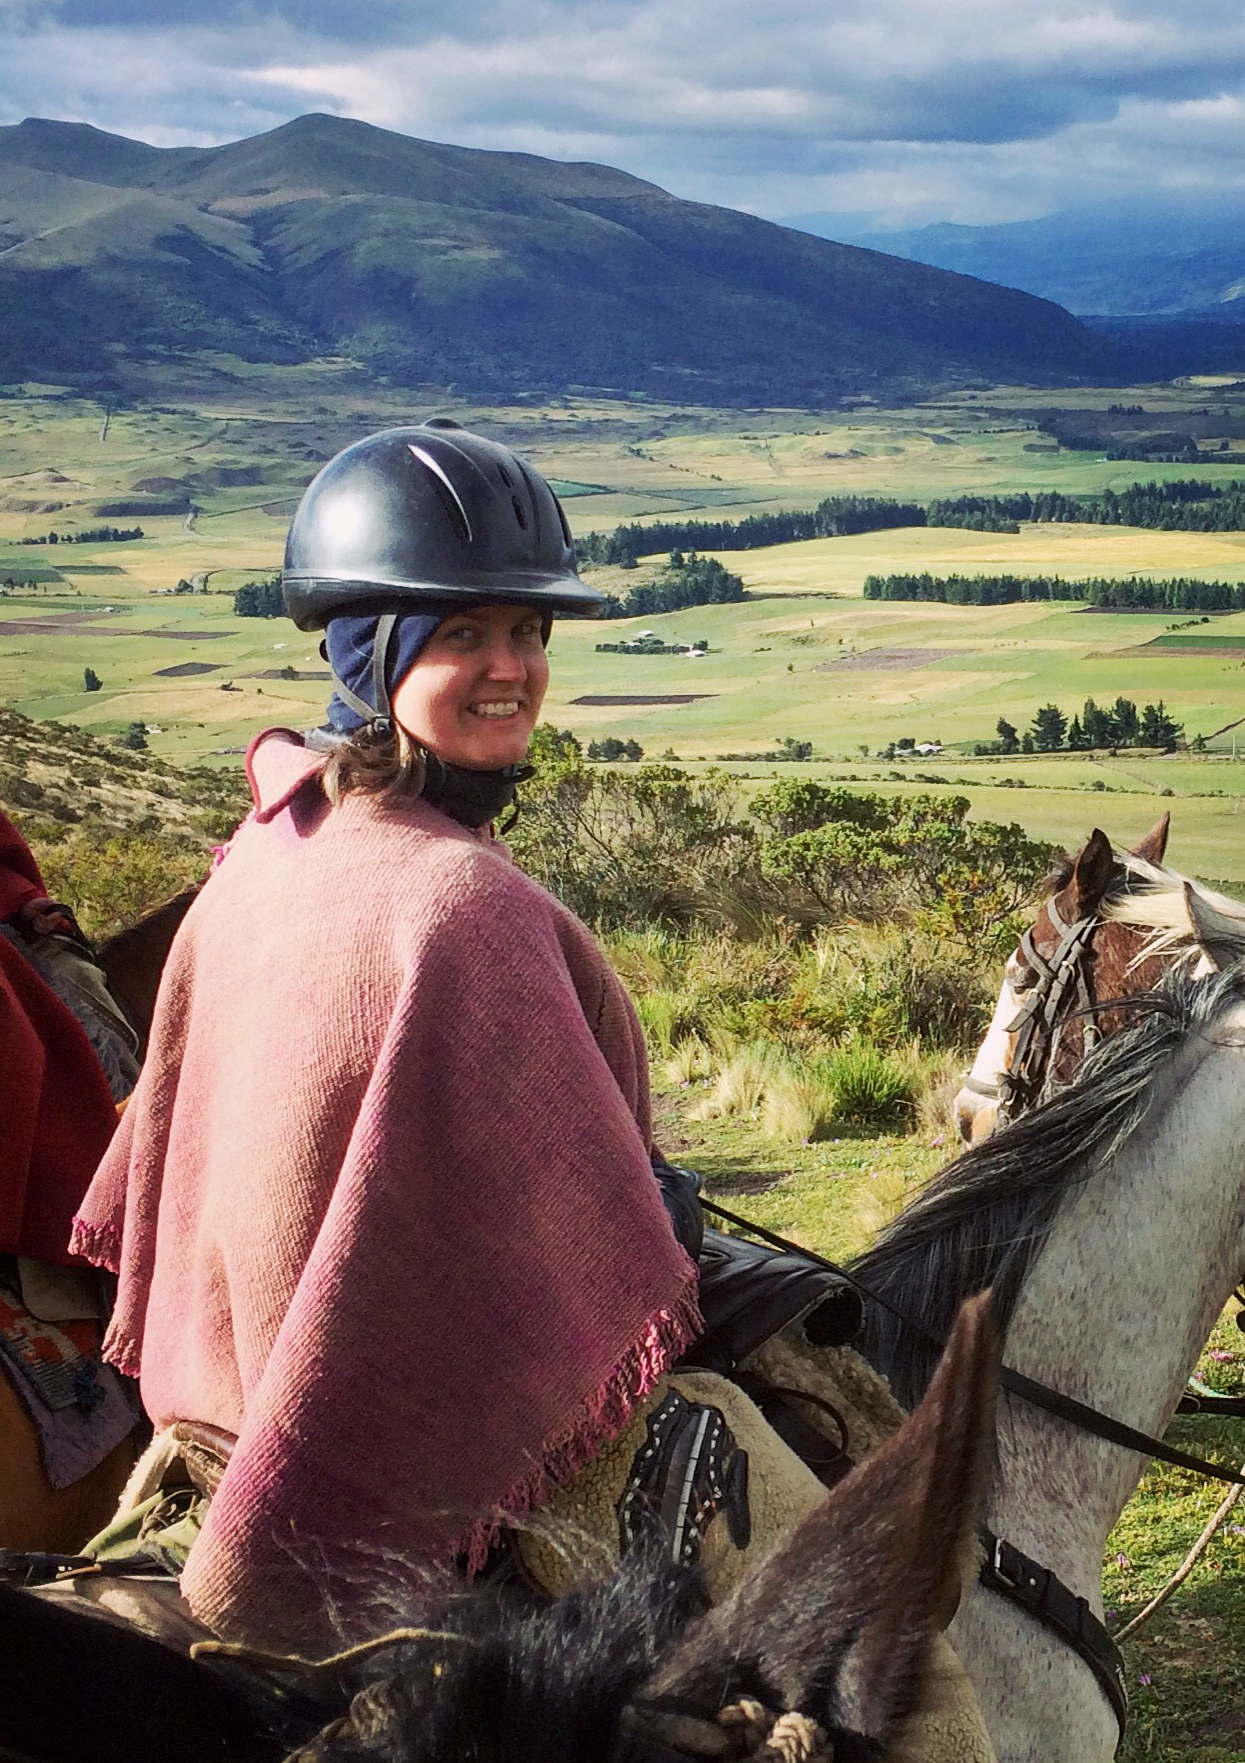 """Food, Farm, and Fleece"" was more than I could ever have hoped for... I loved every minute of the trip ... I would recommend this trip to anyone with a sense of adventure who is looking for a deeper experience than typical tourism."" -Isabel"